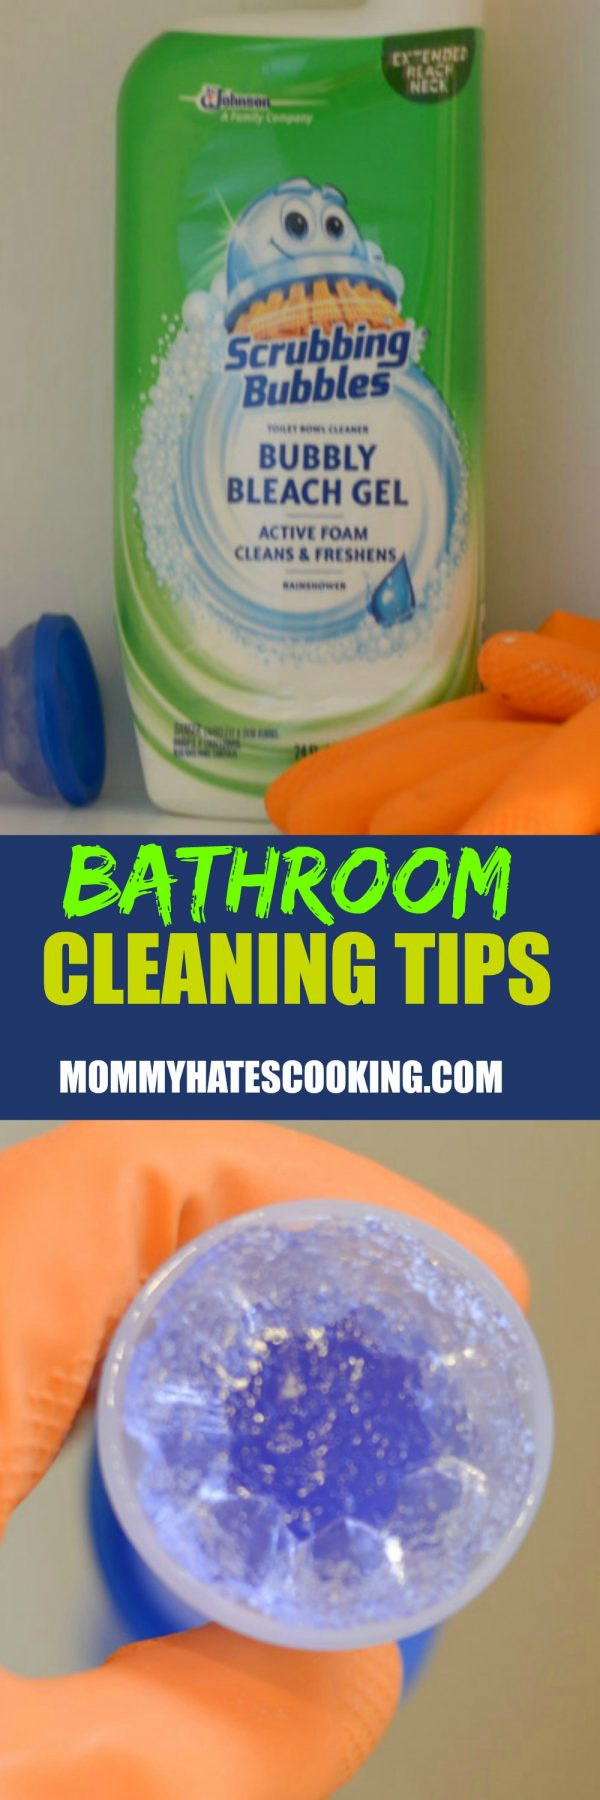 5 Quick Tips to Keep the Bathroom Clean #ExtendtheClean #ad